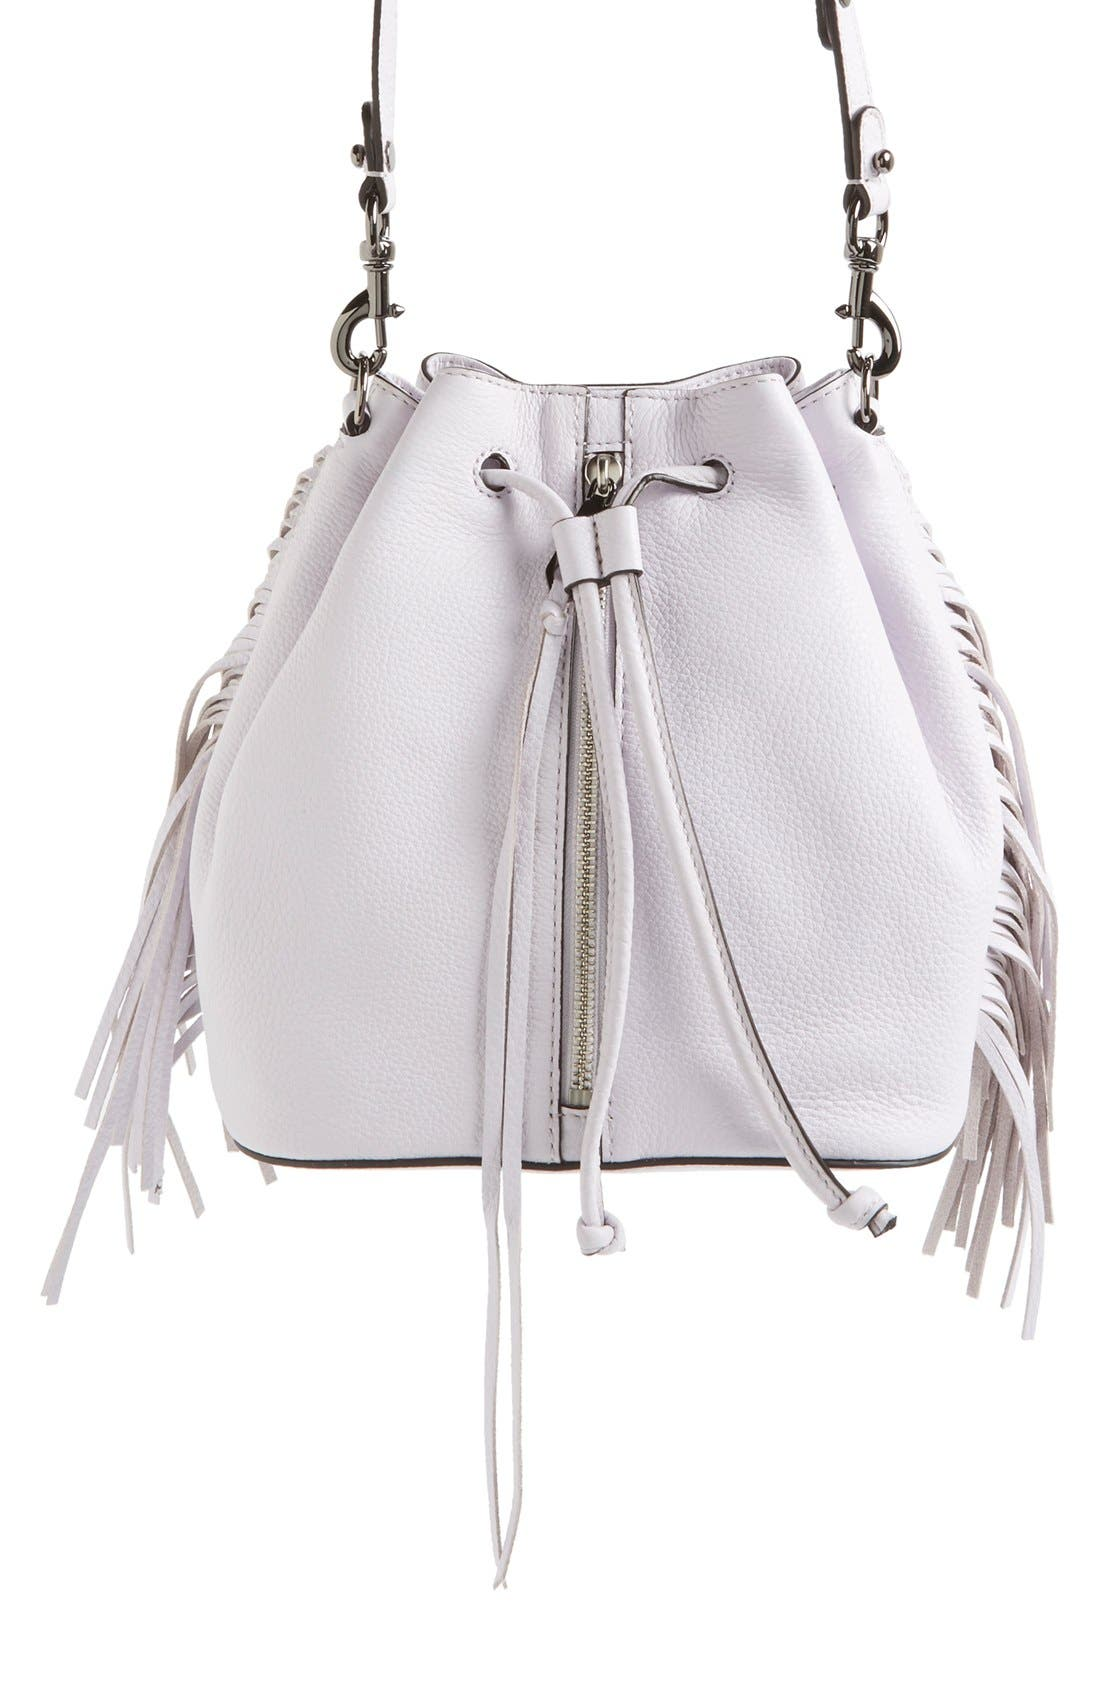 Main Image - Rebecca Minkoff 'Mini Fringe Moto' Bucket Bag (Nordstrom Exclusive)